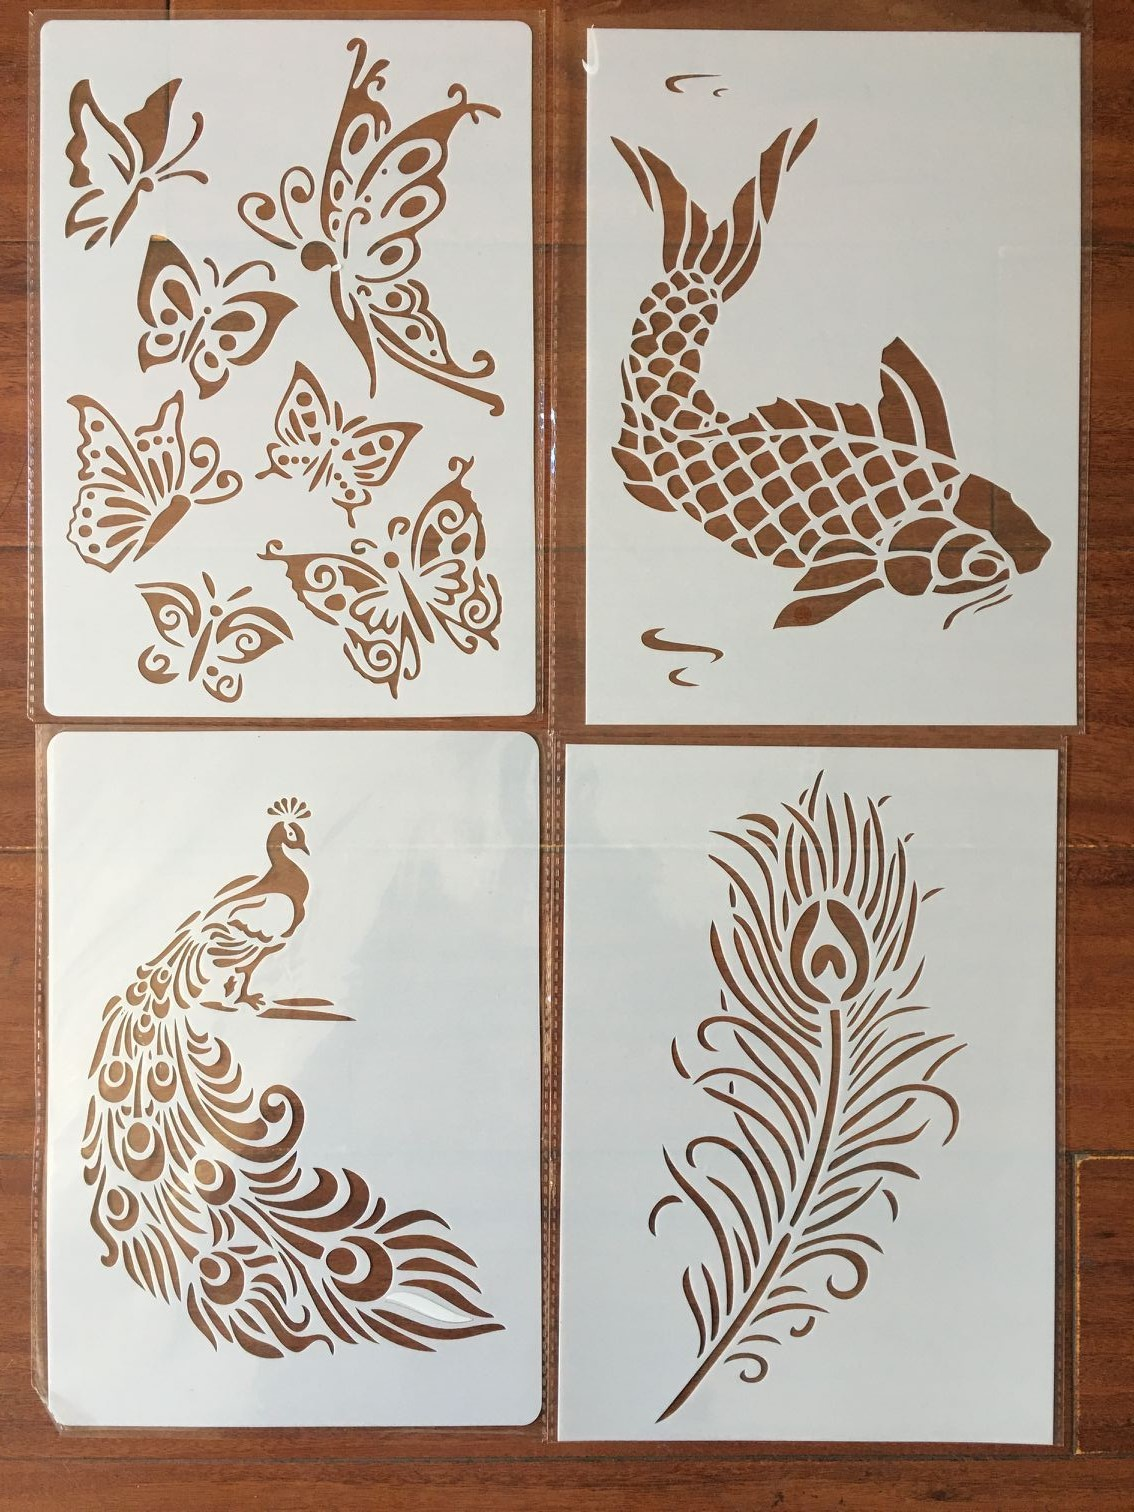 4pcs / Set A4 Peacock Feather Fish Butterfly Stencils Painting Coloring Embossing Scrapbook Album Decorative Template